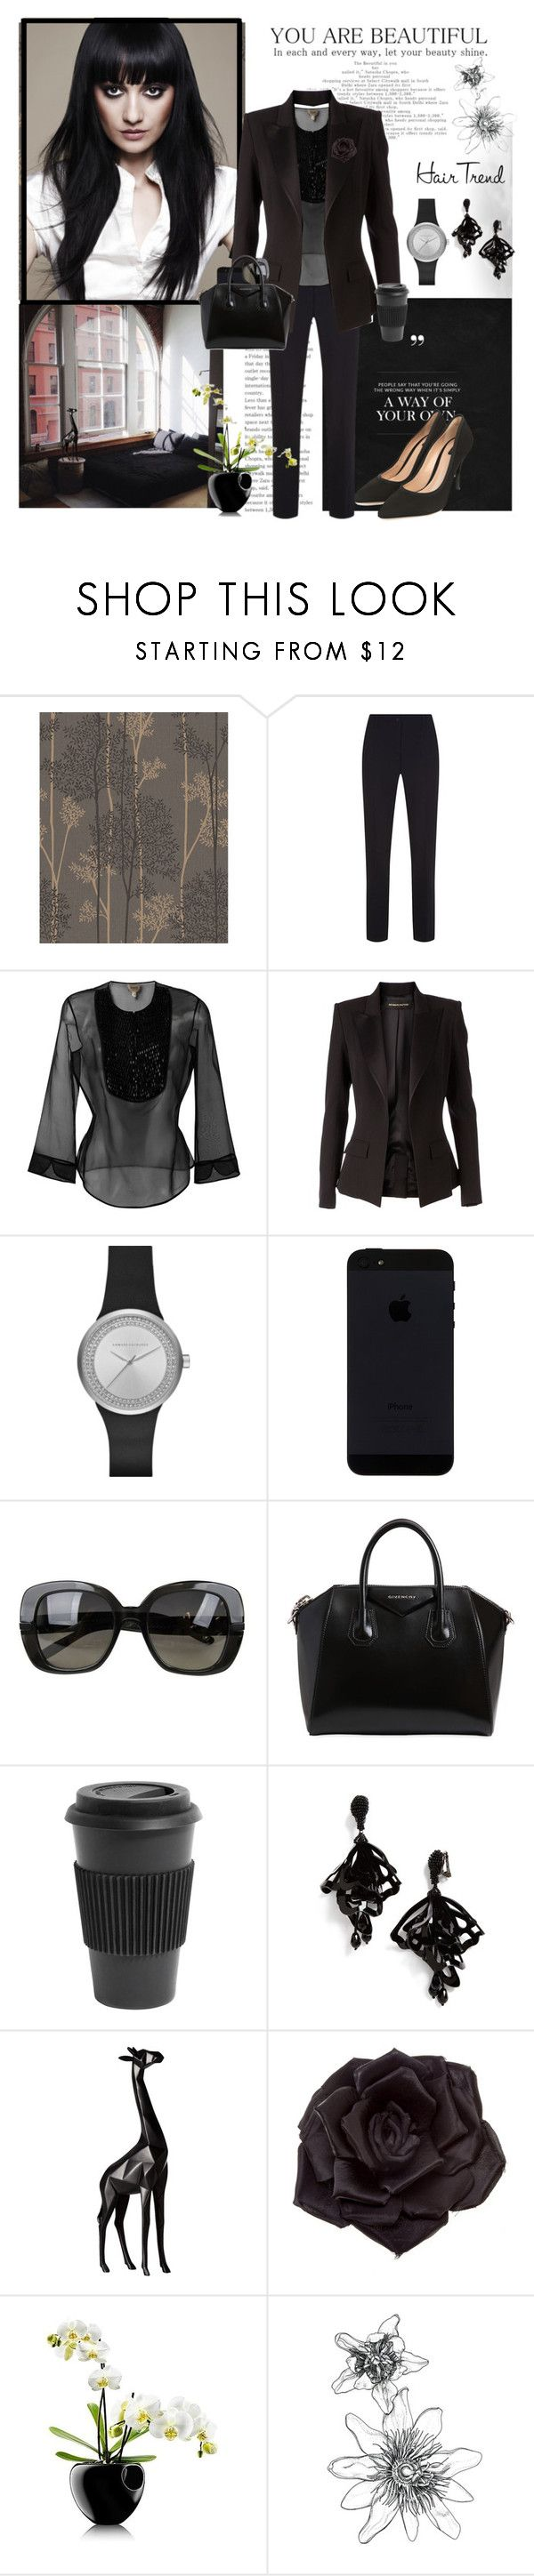 """Matchy-match hair trend"" by krystalkm-7 ❤ liked on Polyvore featuring Graham & Brown, Balmain, Armani Collezioni, Alexandre Vauthier, Armani Exchange, Bottega Veneta, Givenchy, Homage, Oscar de la Renta and Torre & Tagus"